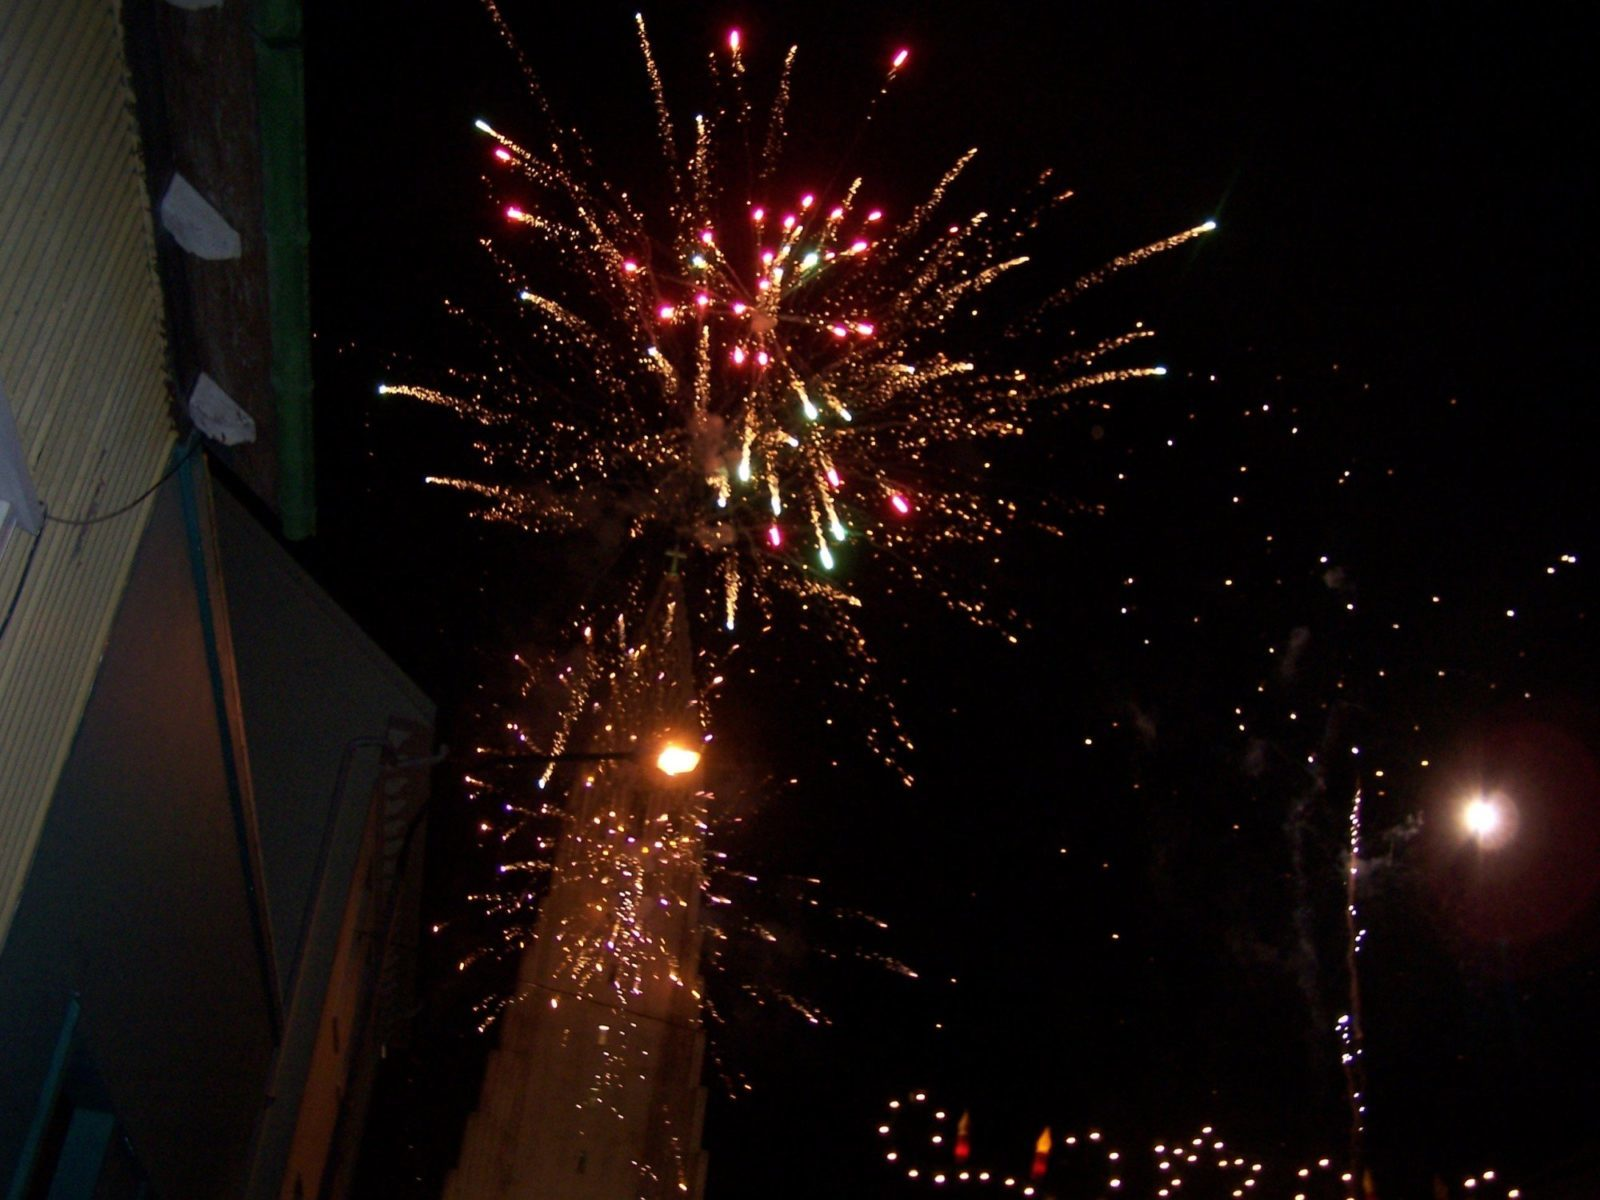 Celebrating the New Year in downtown Reykjavik